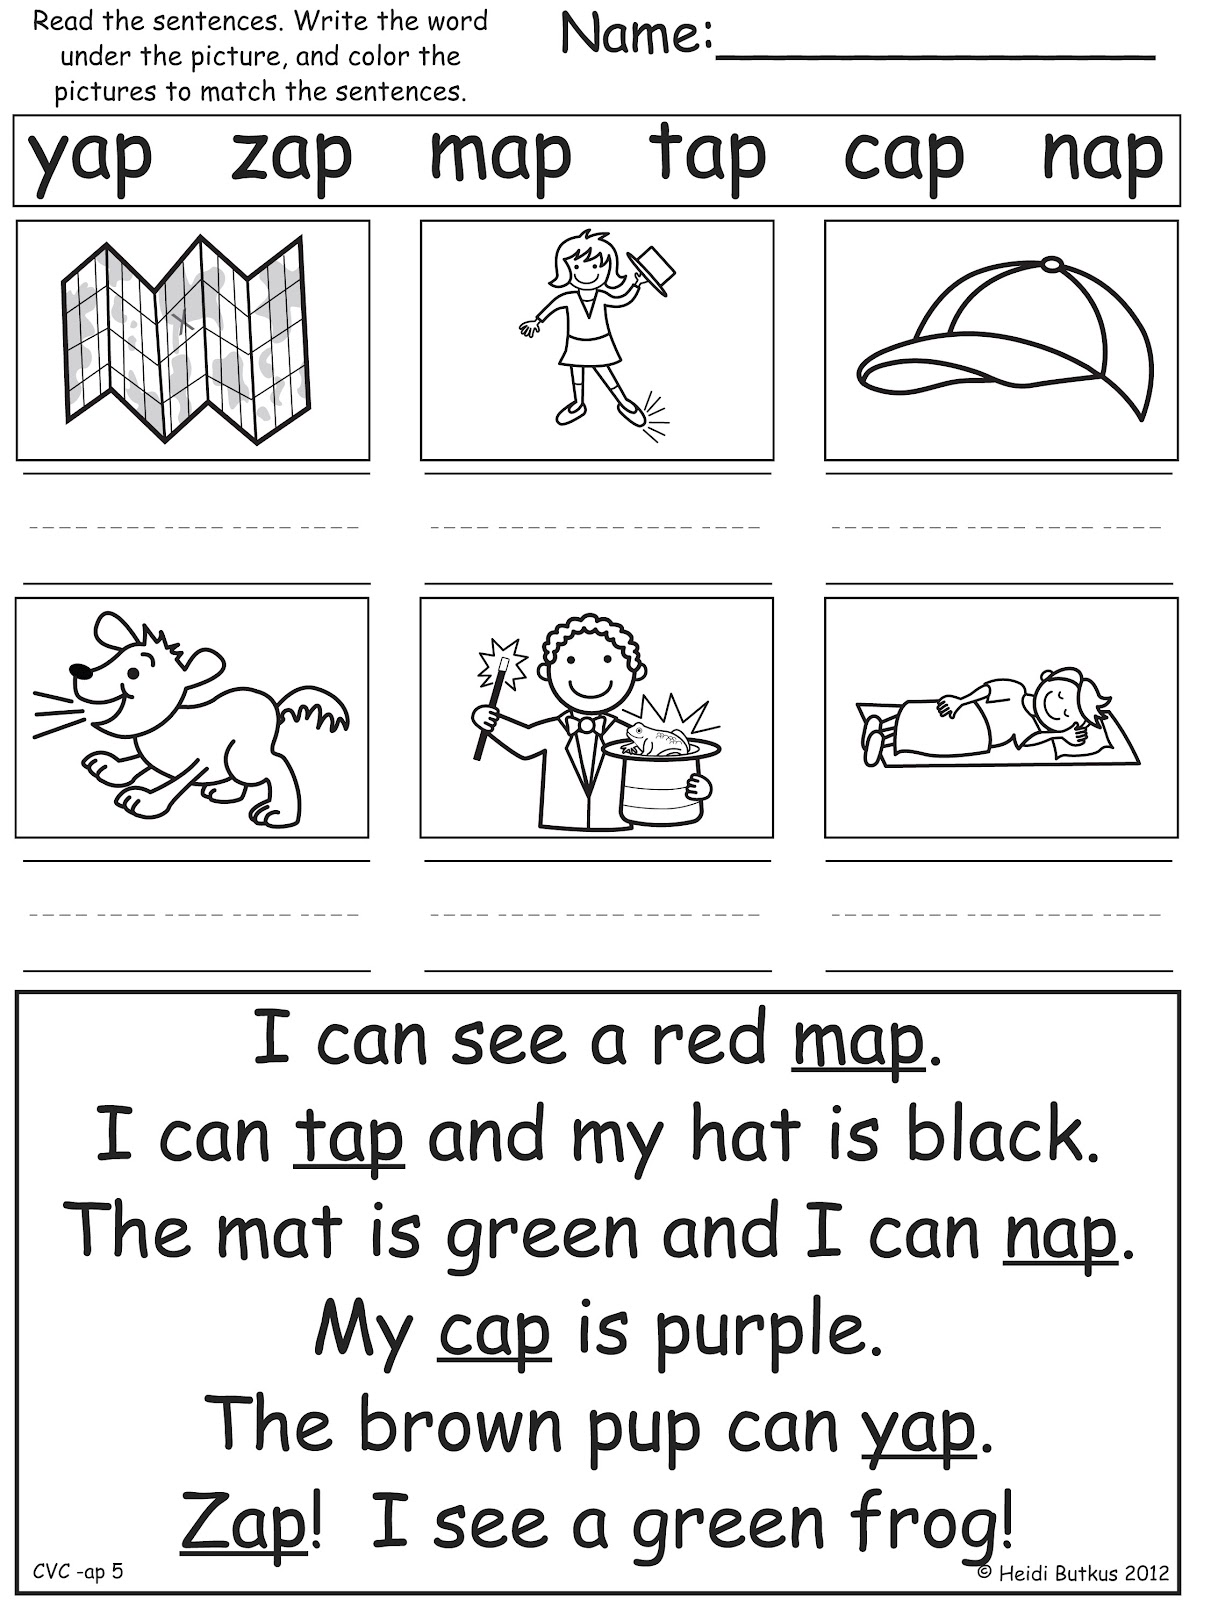 Worksheet Cvc Worksheets For Kindergarten Worksheet Fun